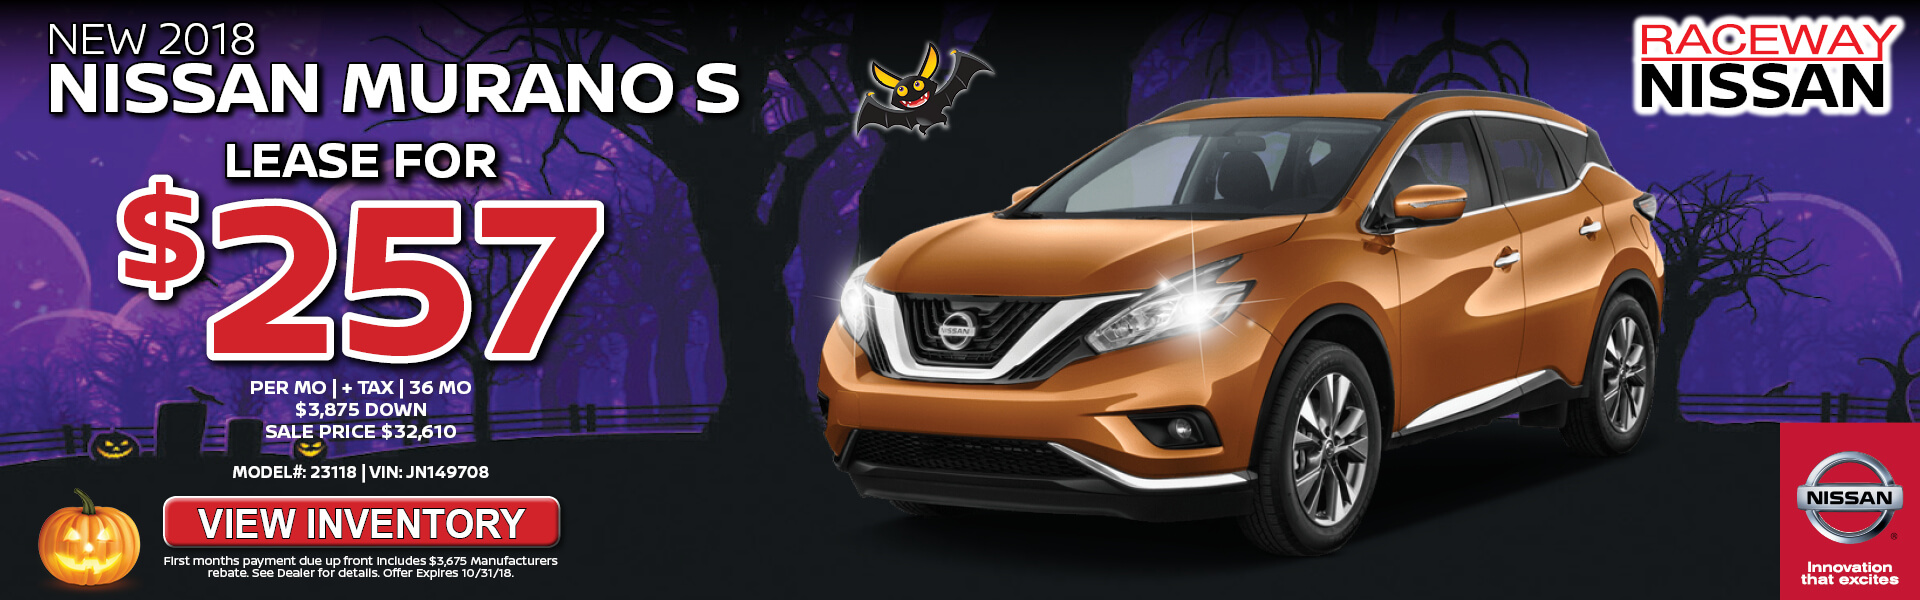 Nissan Murano $257 Lease